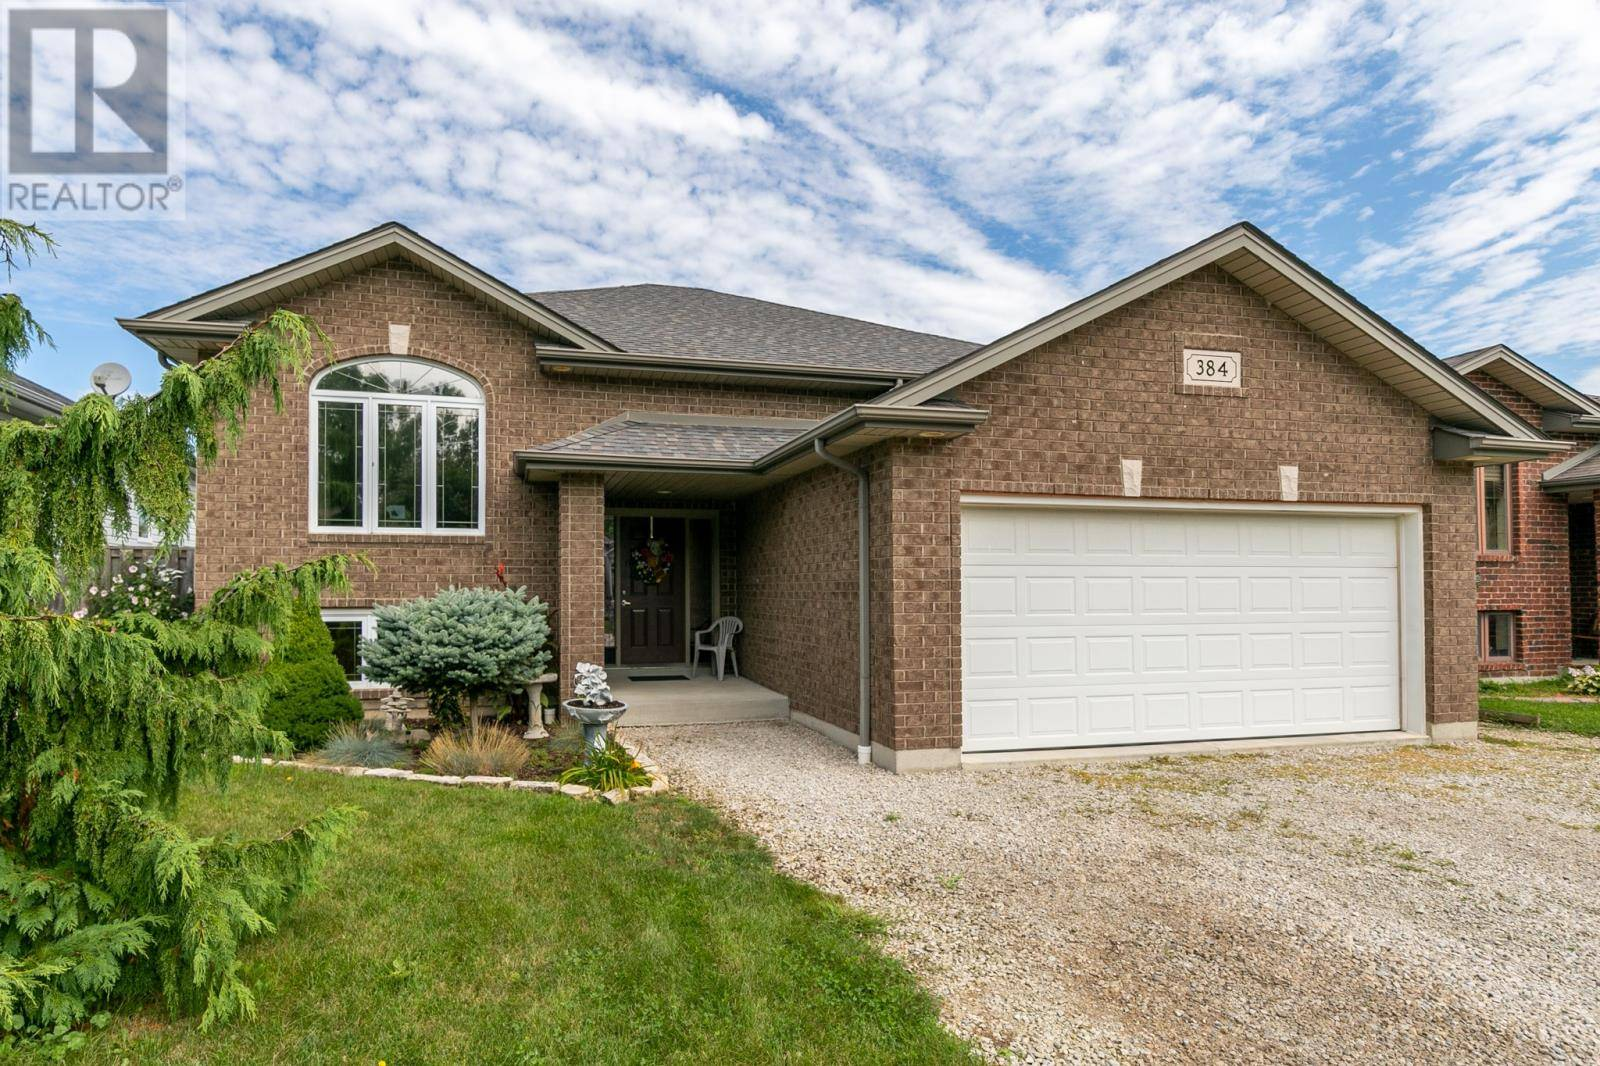 House for sale at 384 White Cres Amherstburg Ontario - MLS: 19028032